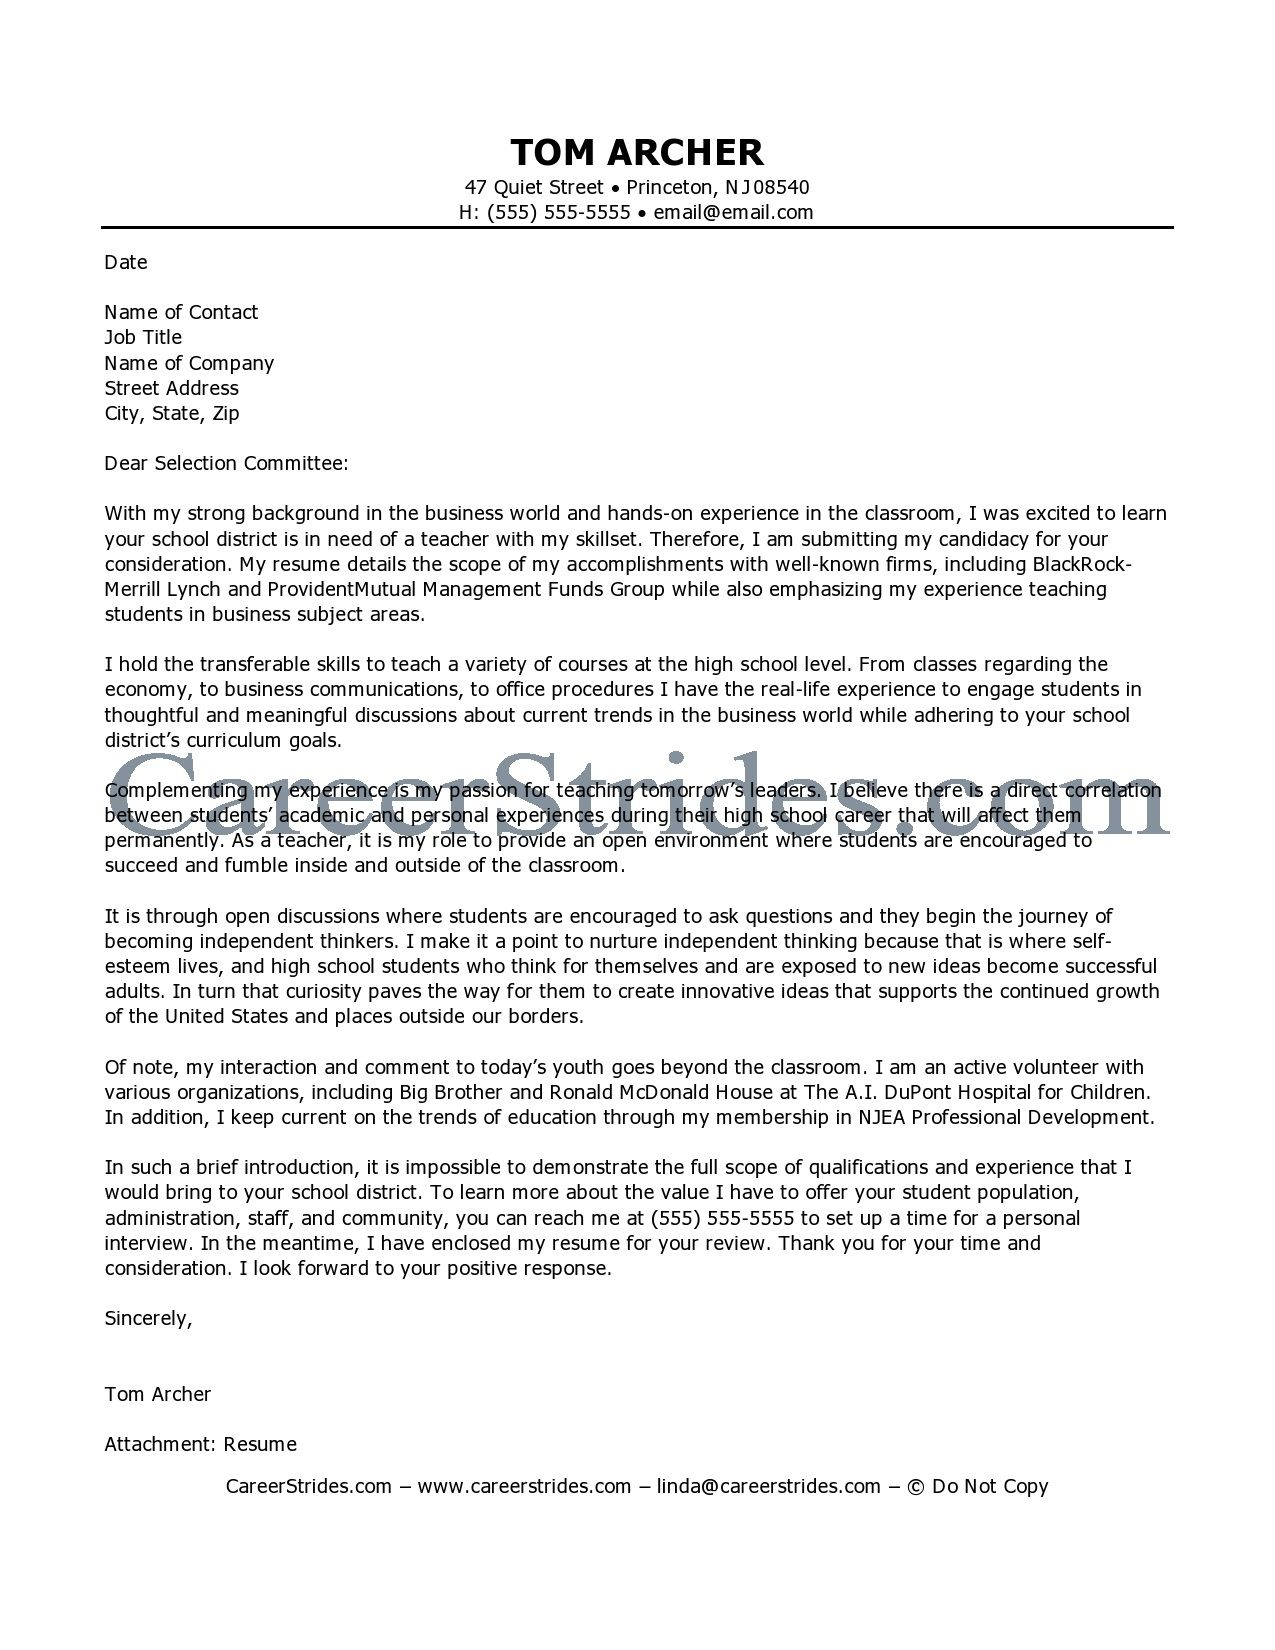 Charming Teaching Cover Letters // Careerstrides.comBusiness Teacher